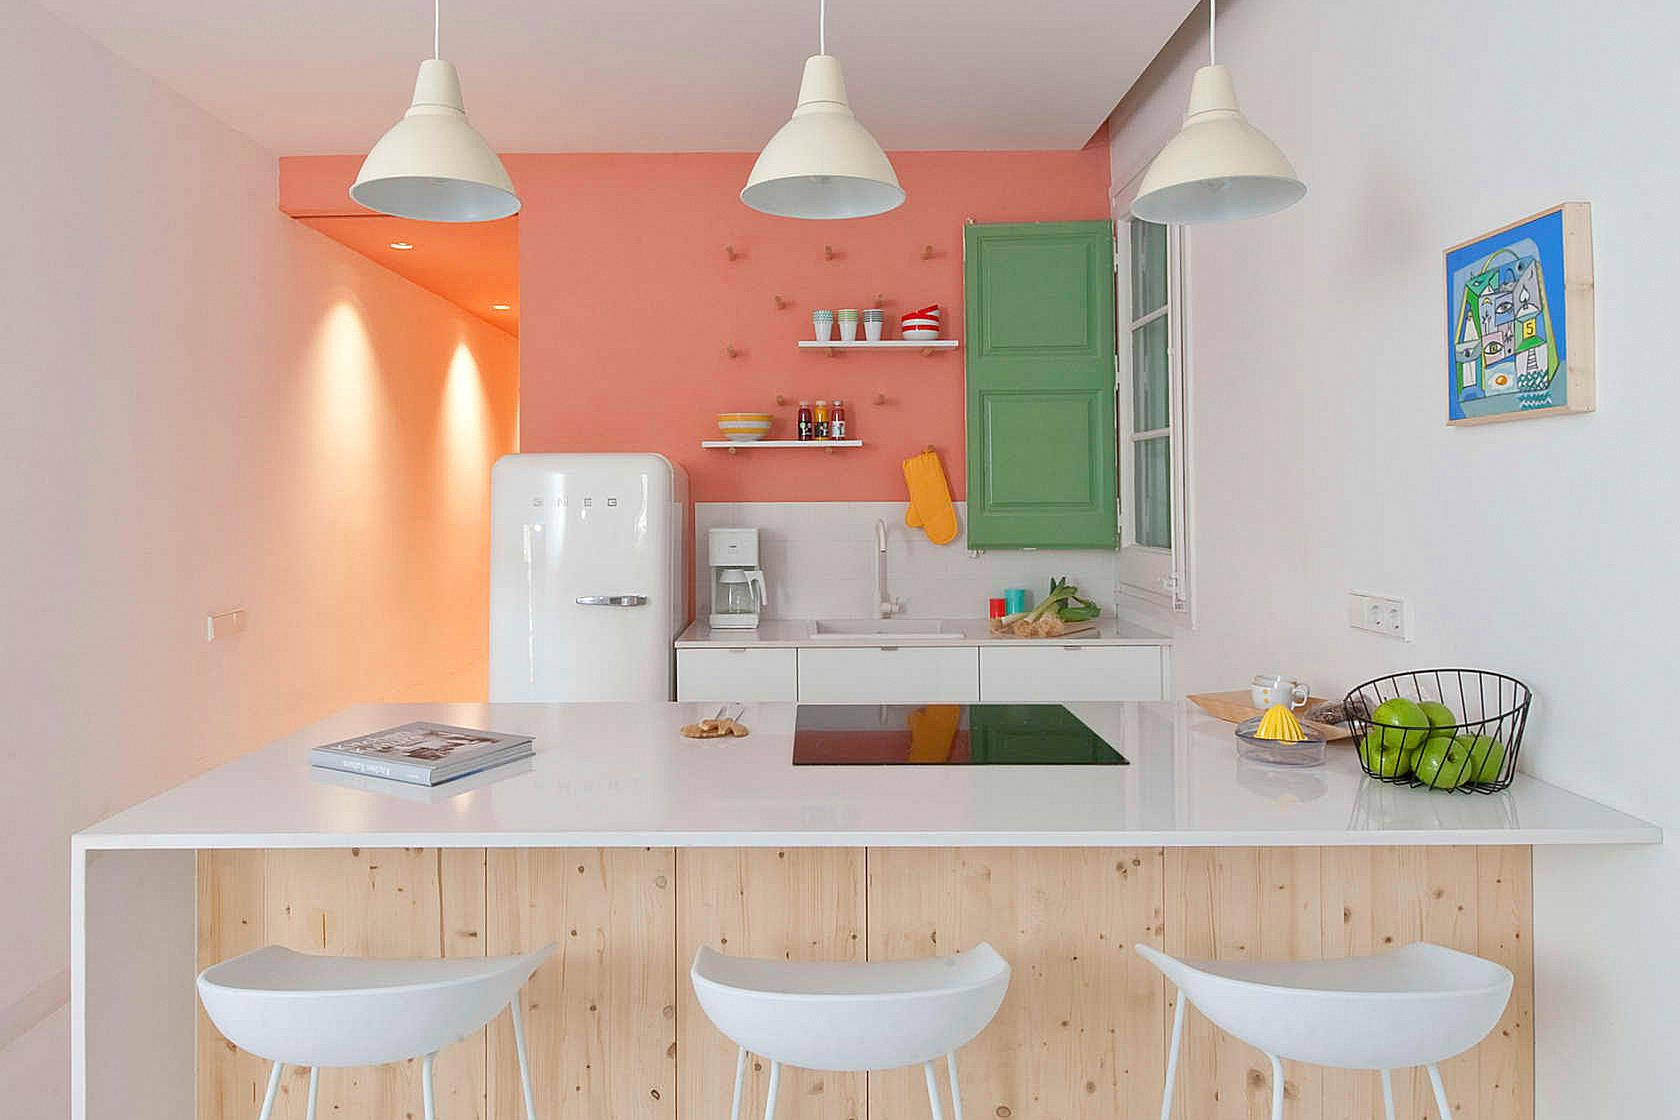 10 SpaceMaking Hacks for Small Kitchens